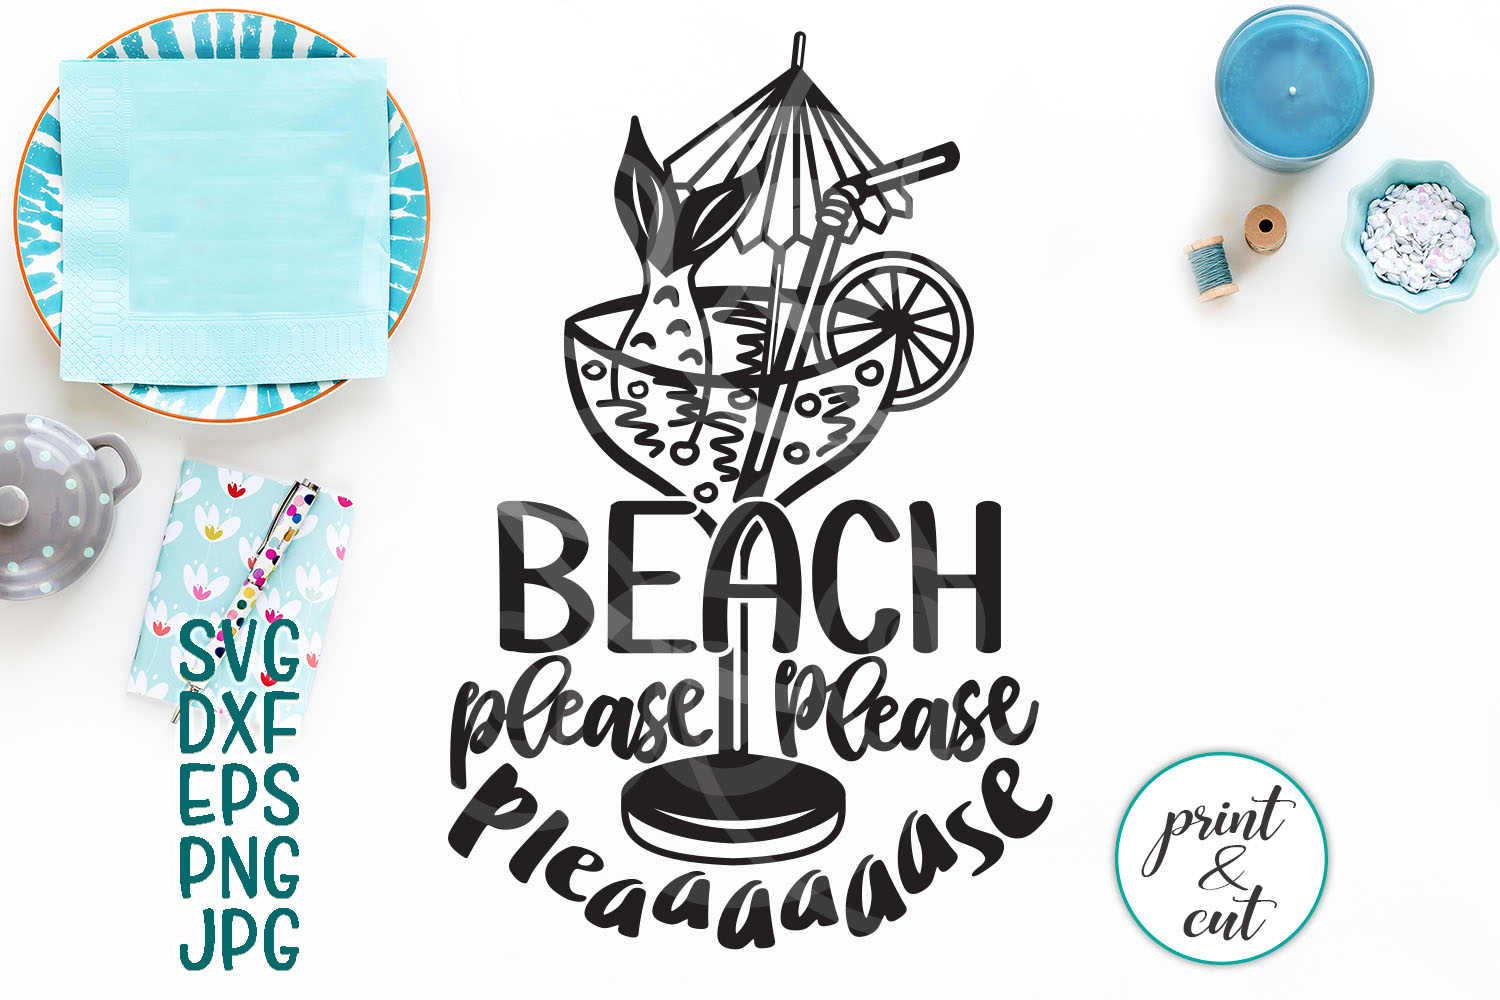 Beach Please Funny Beach Cutting File Girls Shirt Design